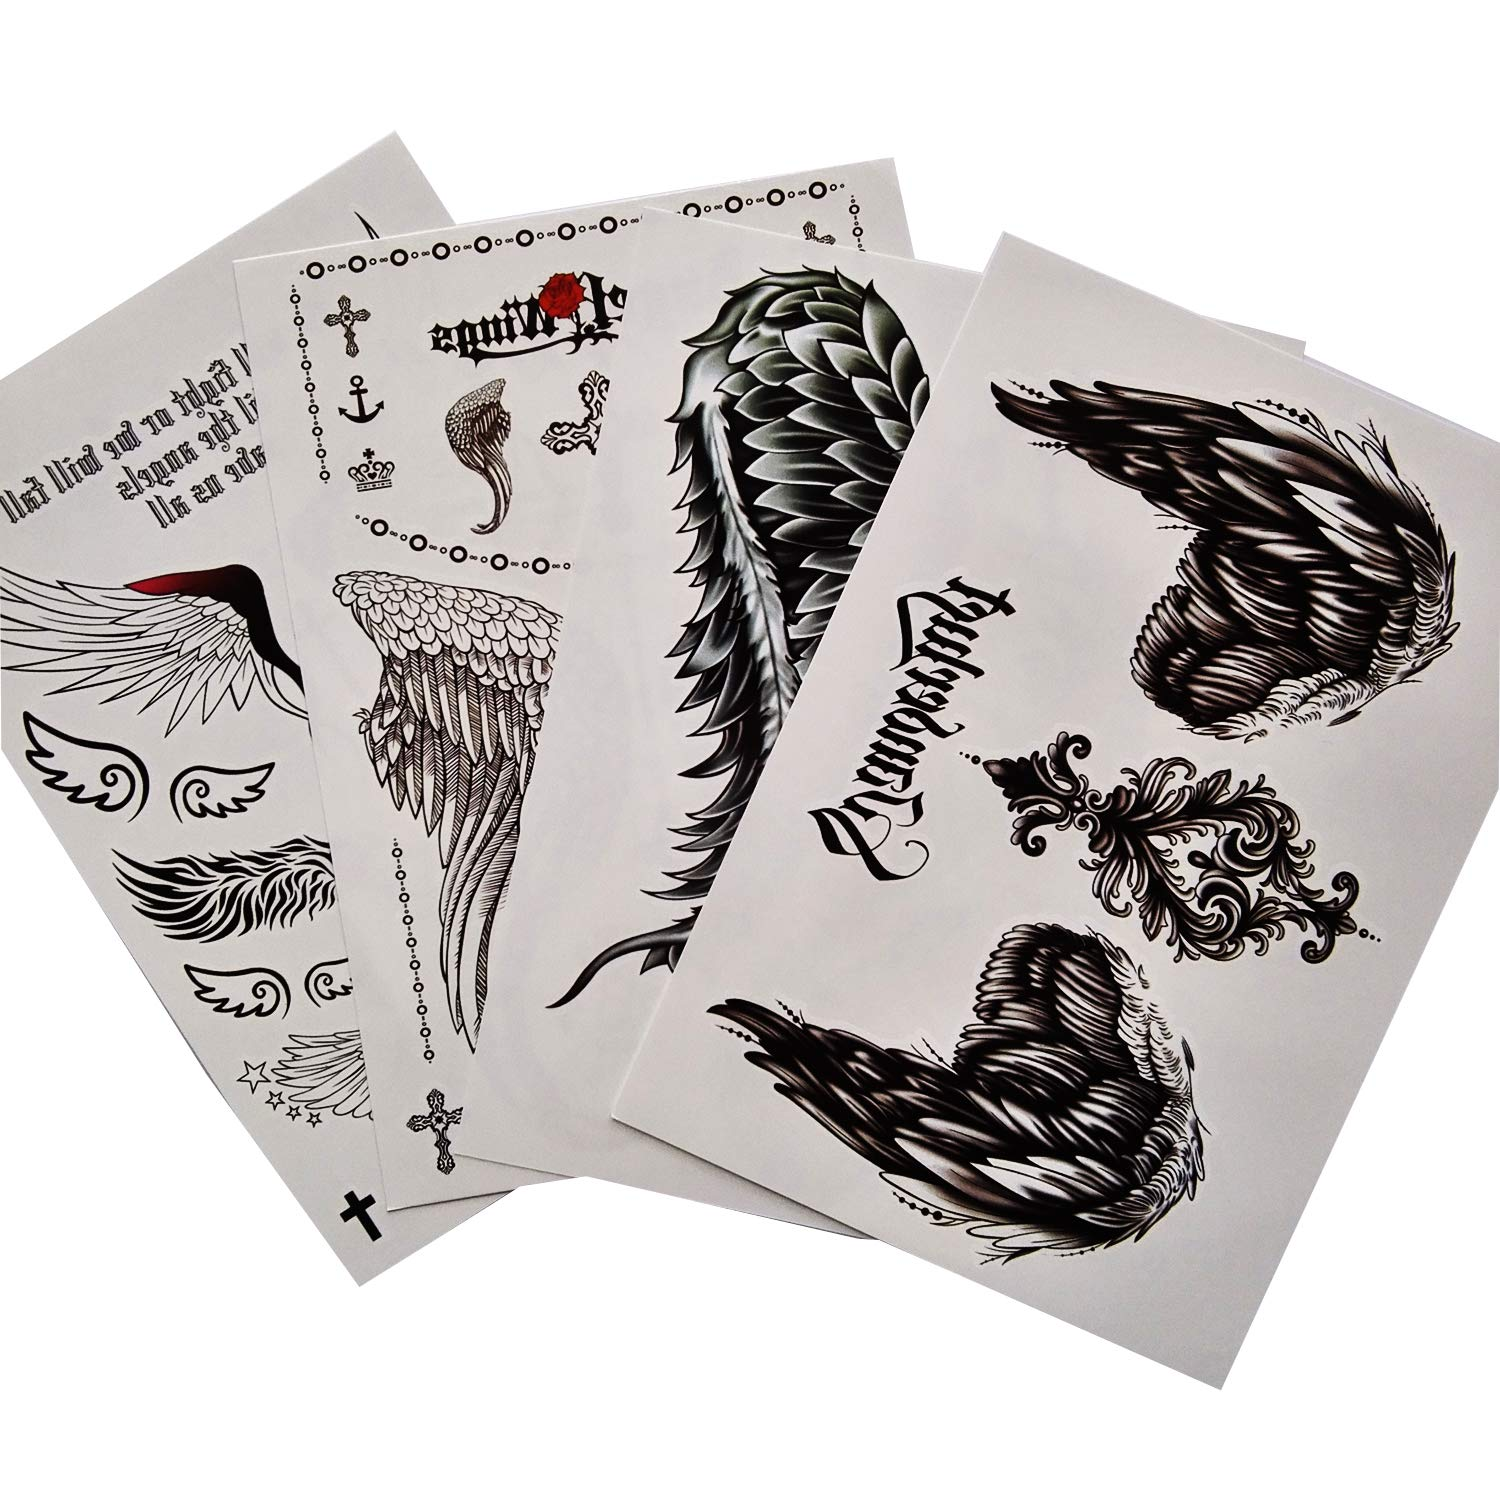 Kotbs 4 2021 spring Branded goods and summer new Sheets Mix Angel Wings Tattoo for Women Wa Sticker Large